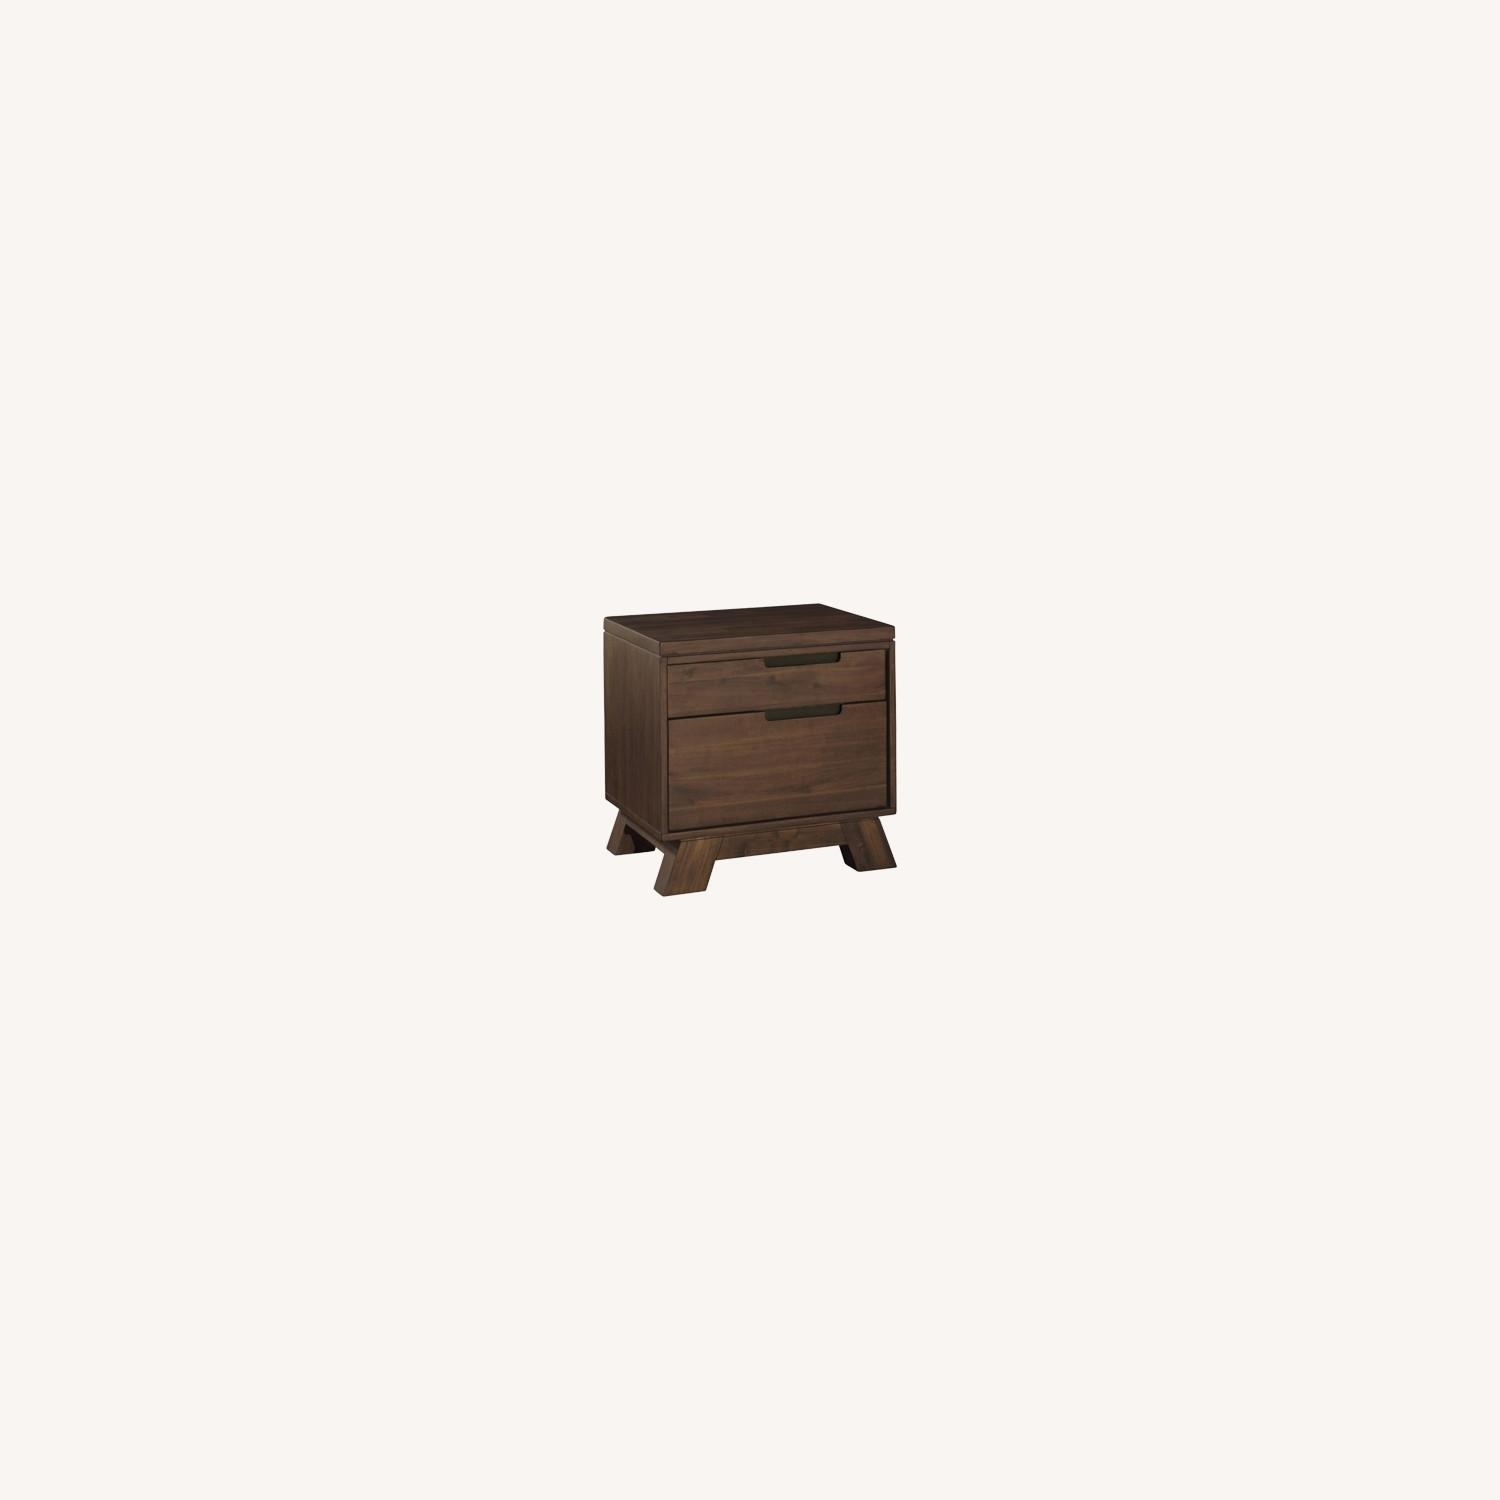 Modus Furniture Solid Wood 2 Drawer Nightstand - image-0